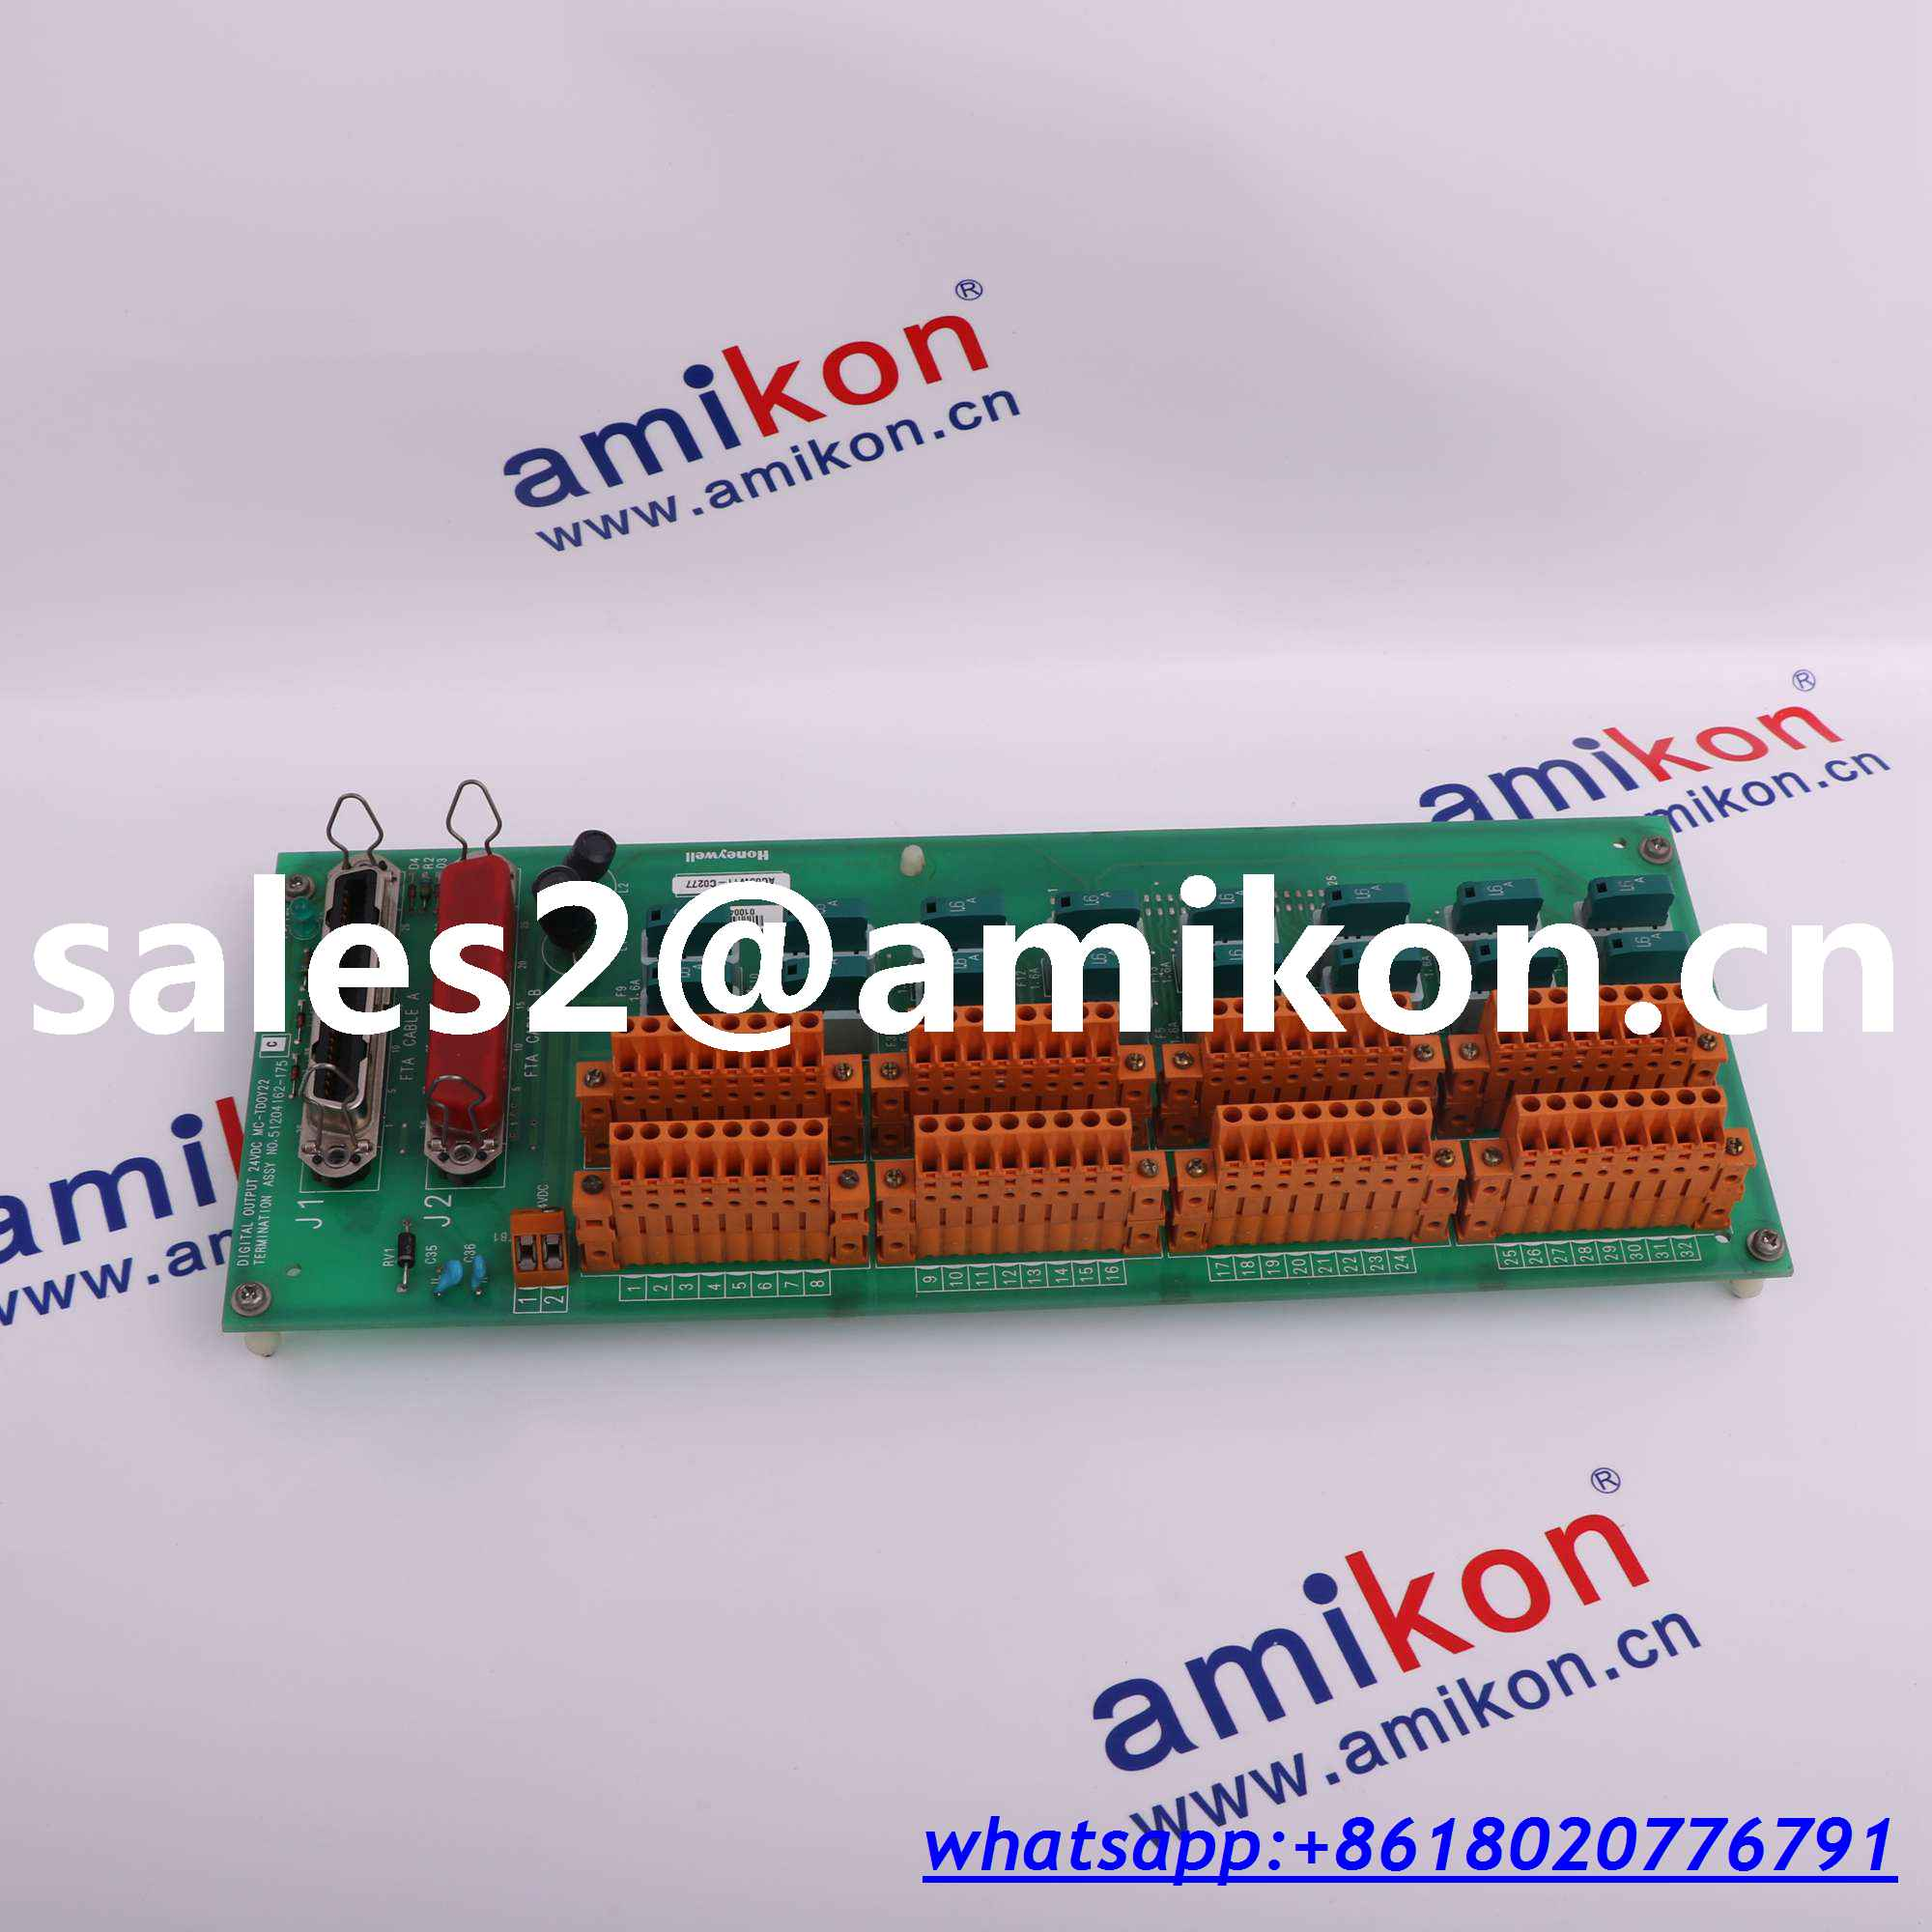 HONEYWELL 51309276-150 sales2@amikon.cn NEW IN STOCK electrical distributors BIG DISCOUNT